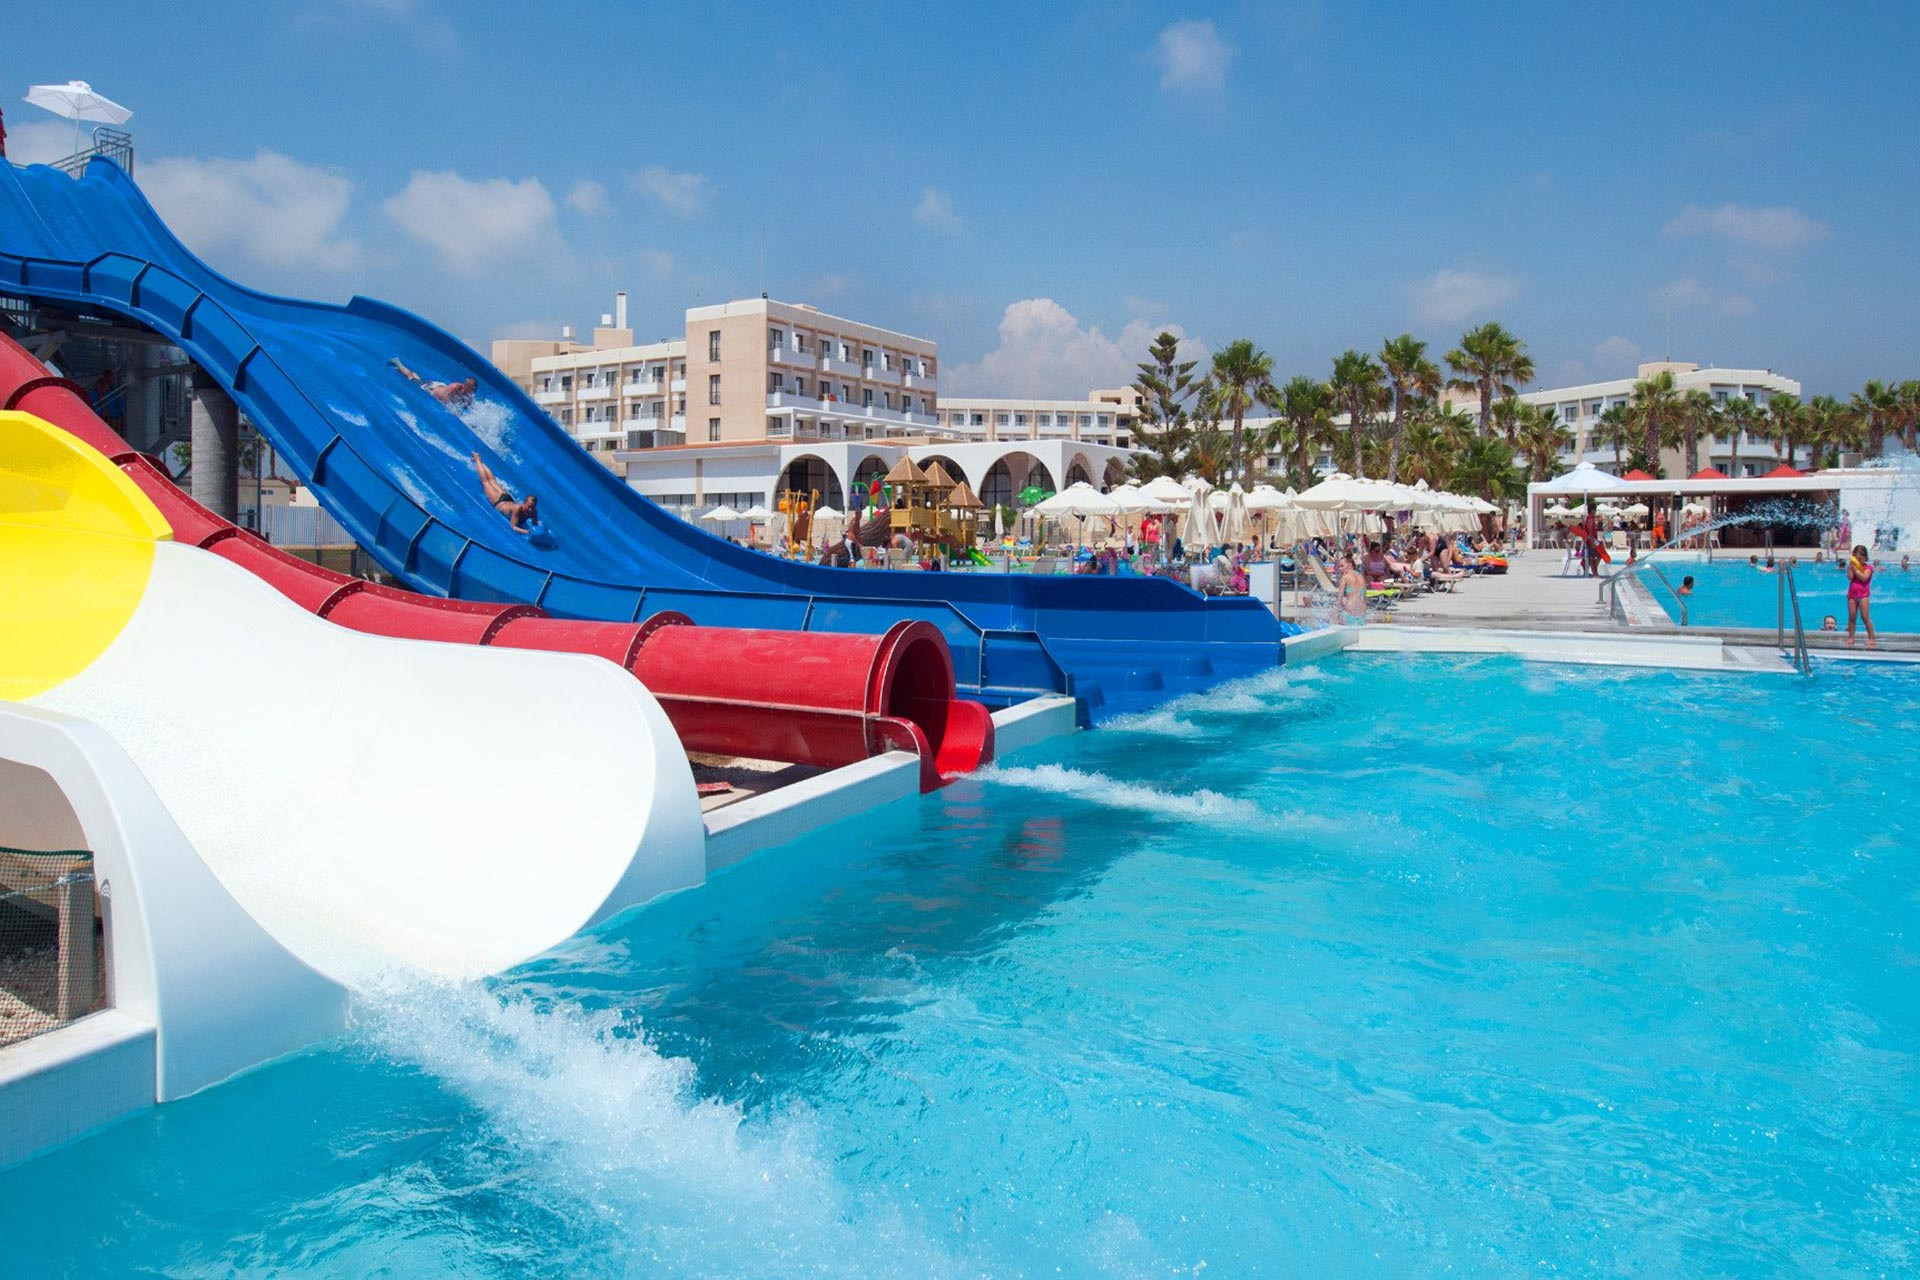 Water Park at Louis Phaethon Beach in Greece; Courtesy of Louis Phaethon Beach